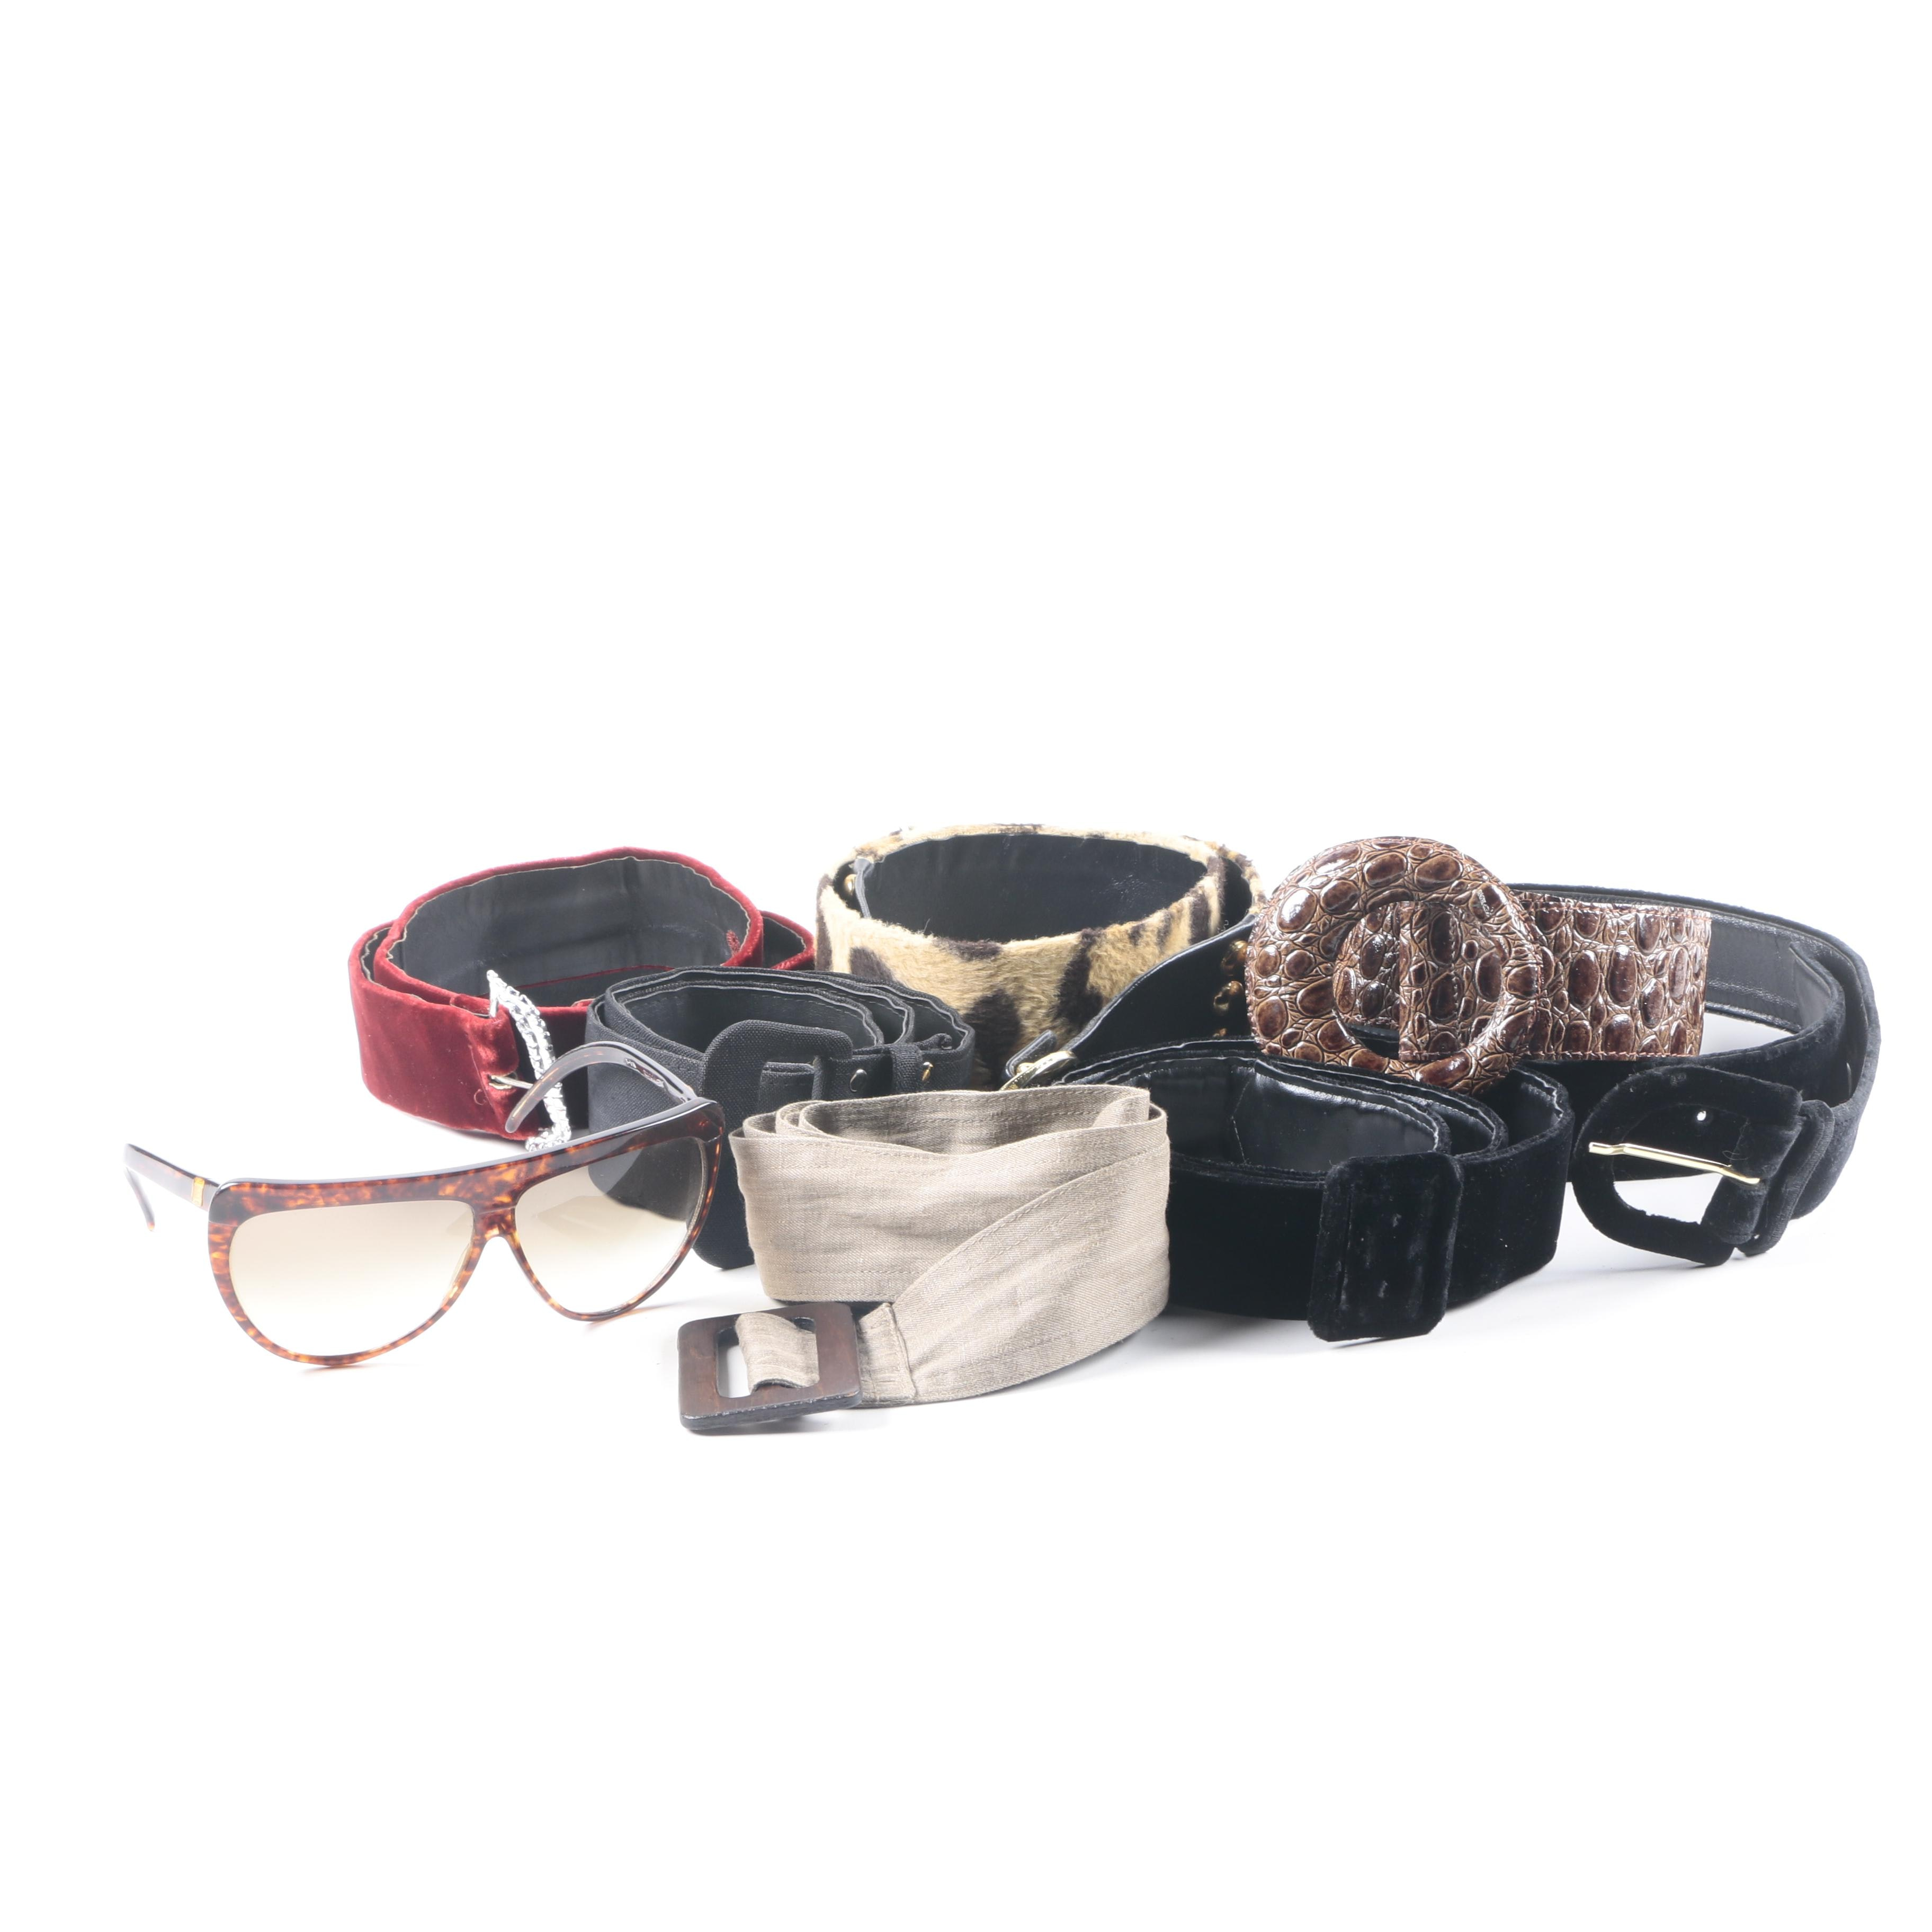 Belts and Pair of Sunglasses